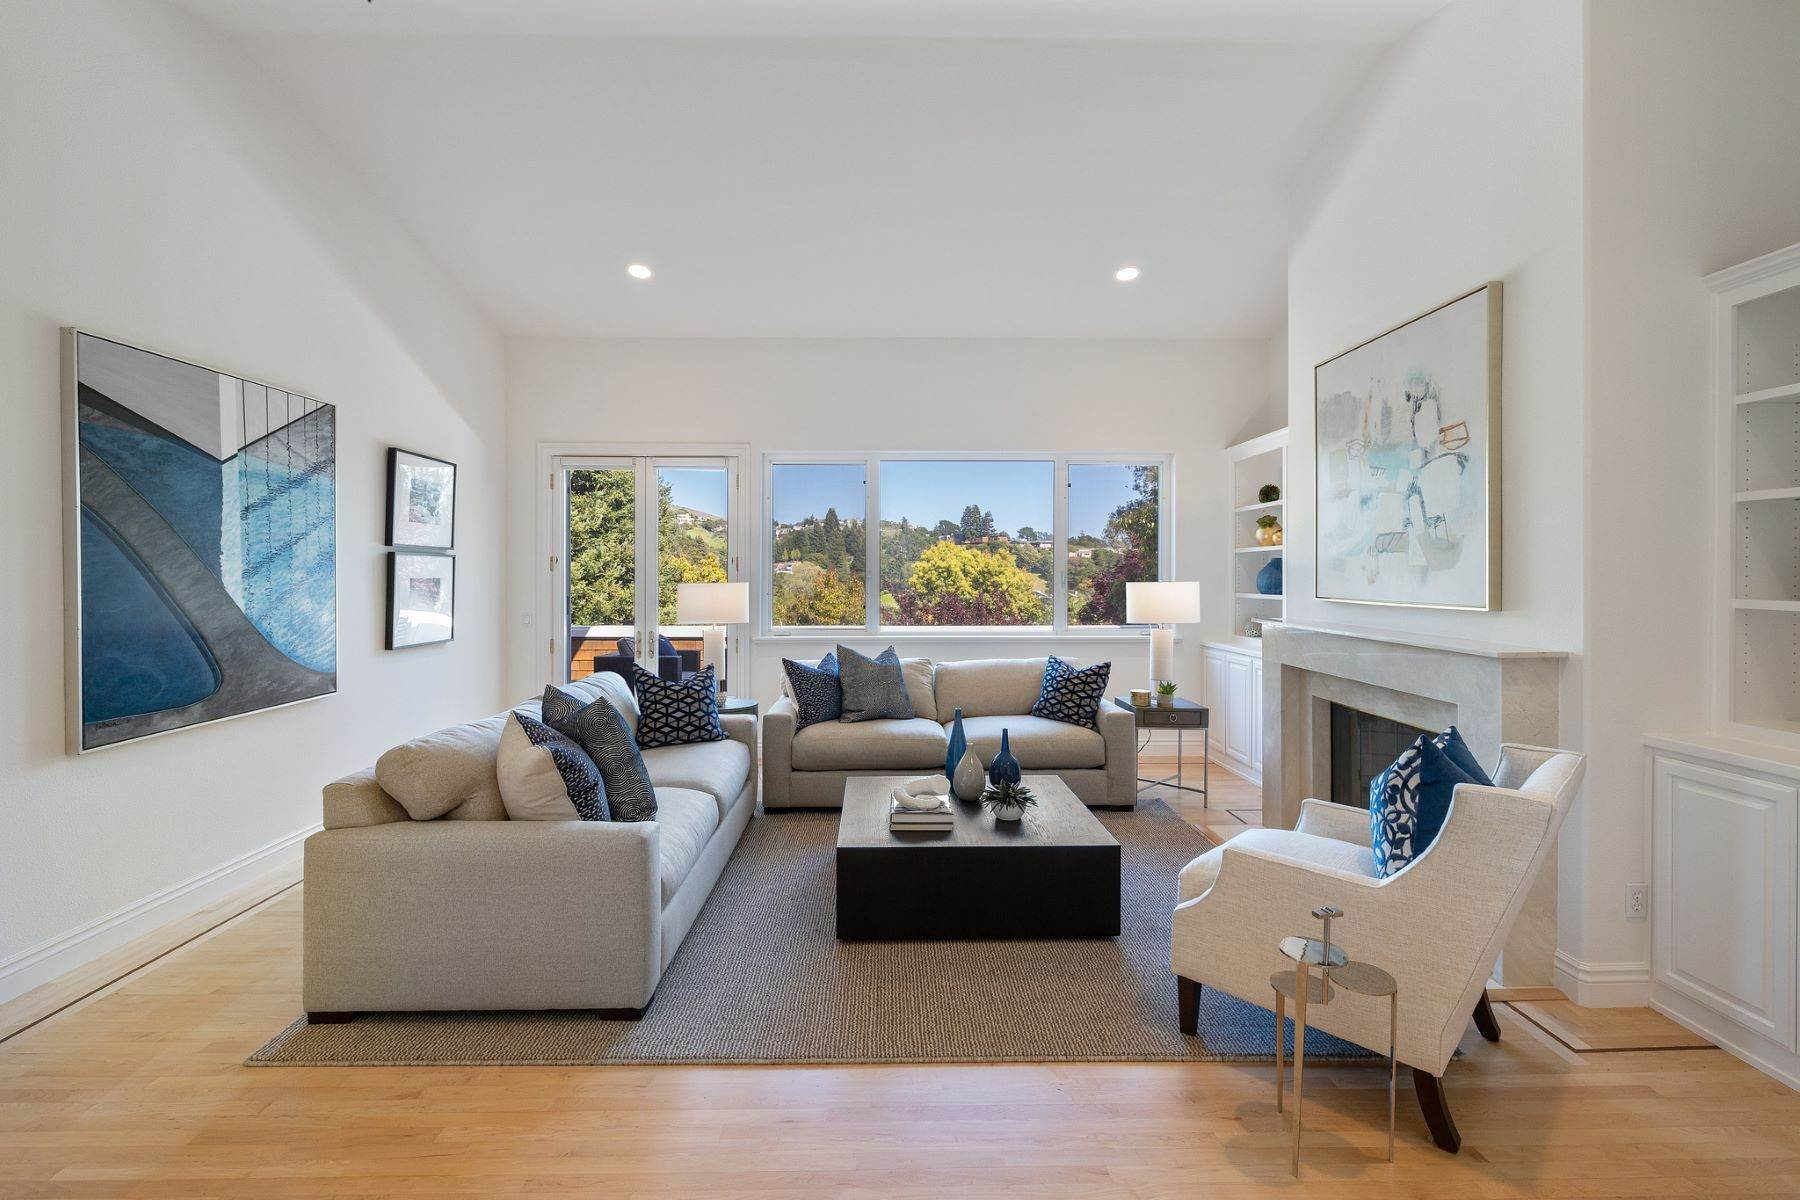 6. Single Family Homes for Sale at Exceptional Tiburon Home 30 Vista Tiburon Drive Tiburon, California 94920 United States